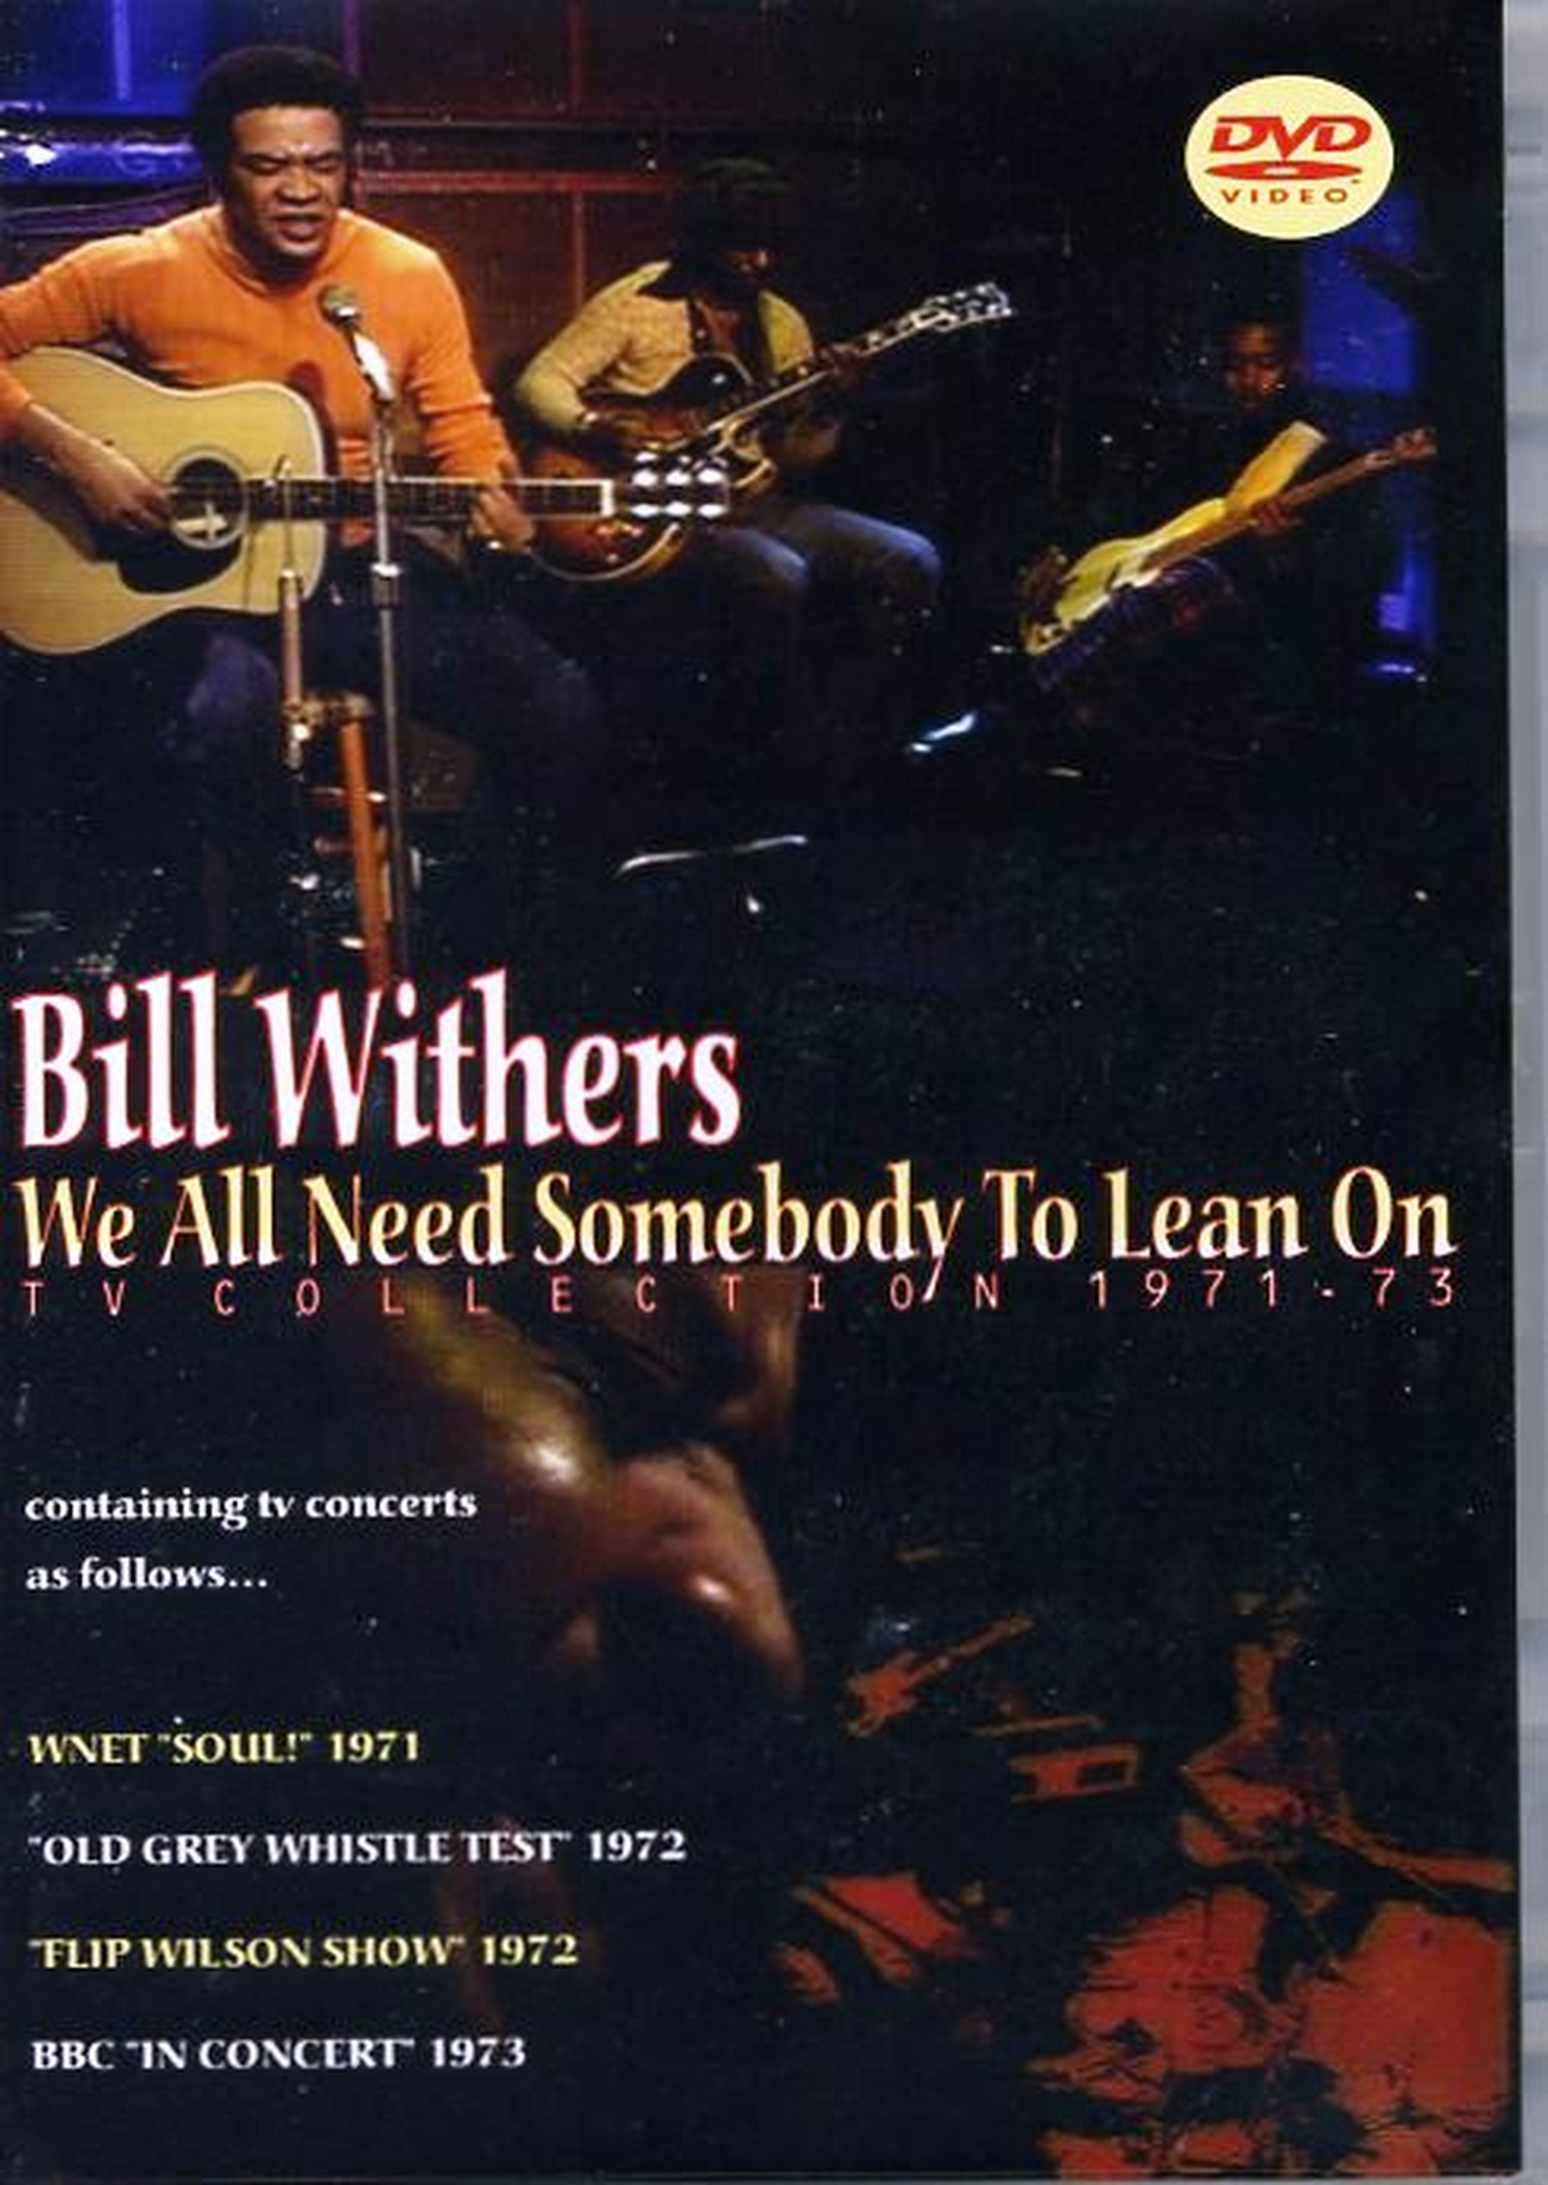 Bill Withers ビル・ウィザーズ/TV Collection 1971-1973